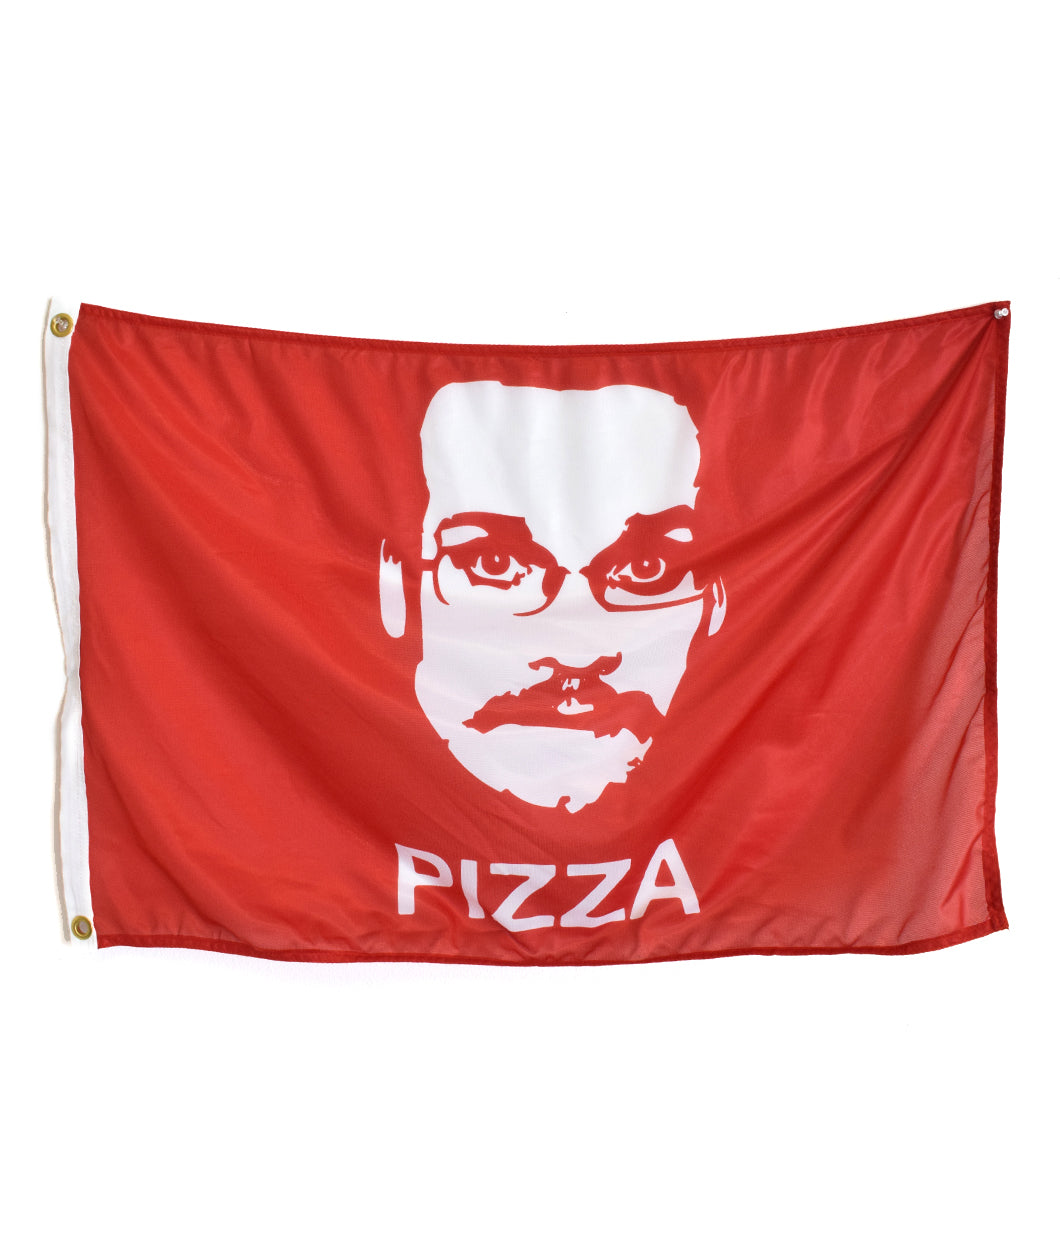 Pizza John Flag